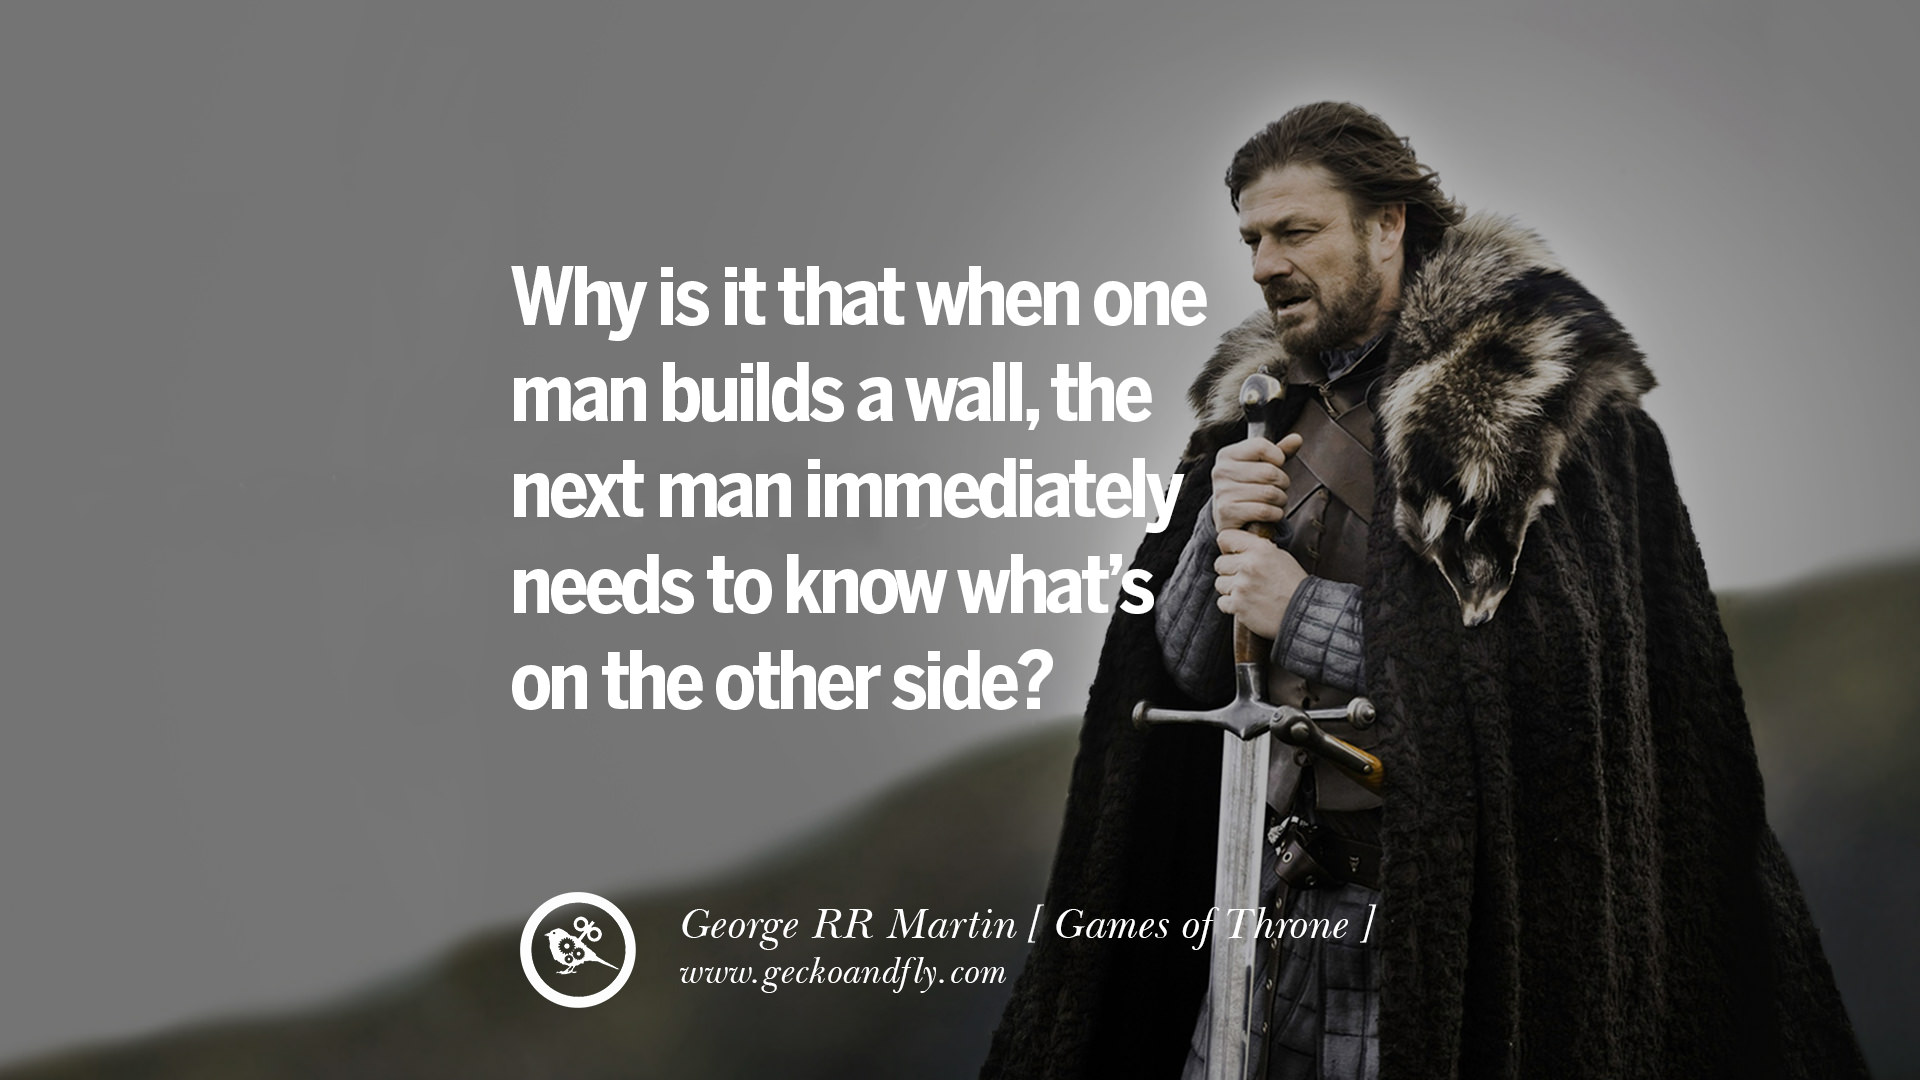 Love Quotes Game Of Thrones: 27 A Game Of Thrones Quotes By George RR Martin